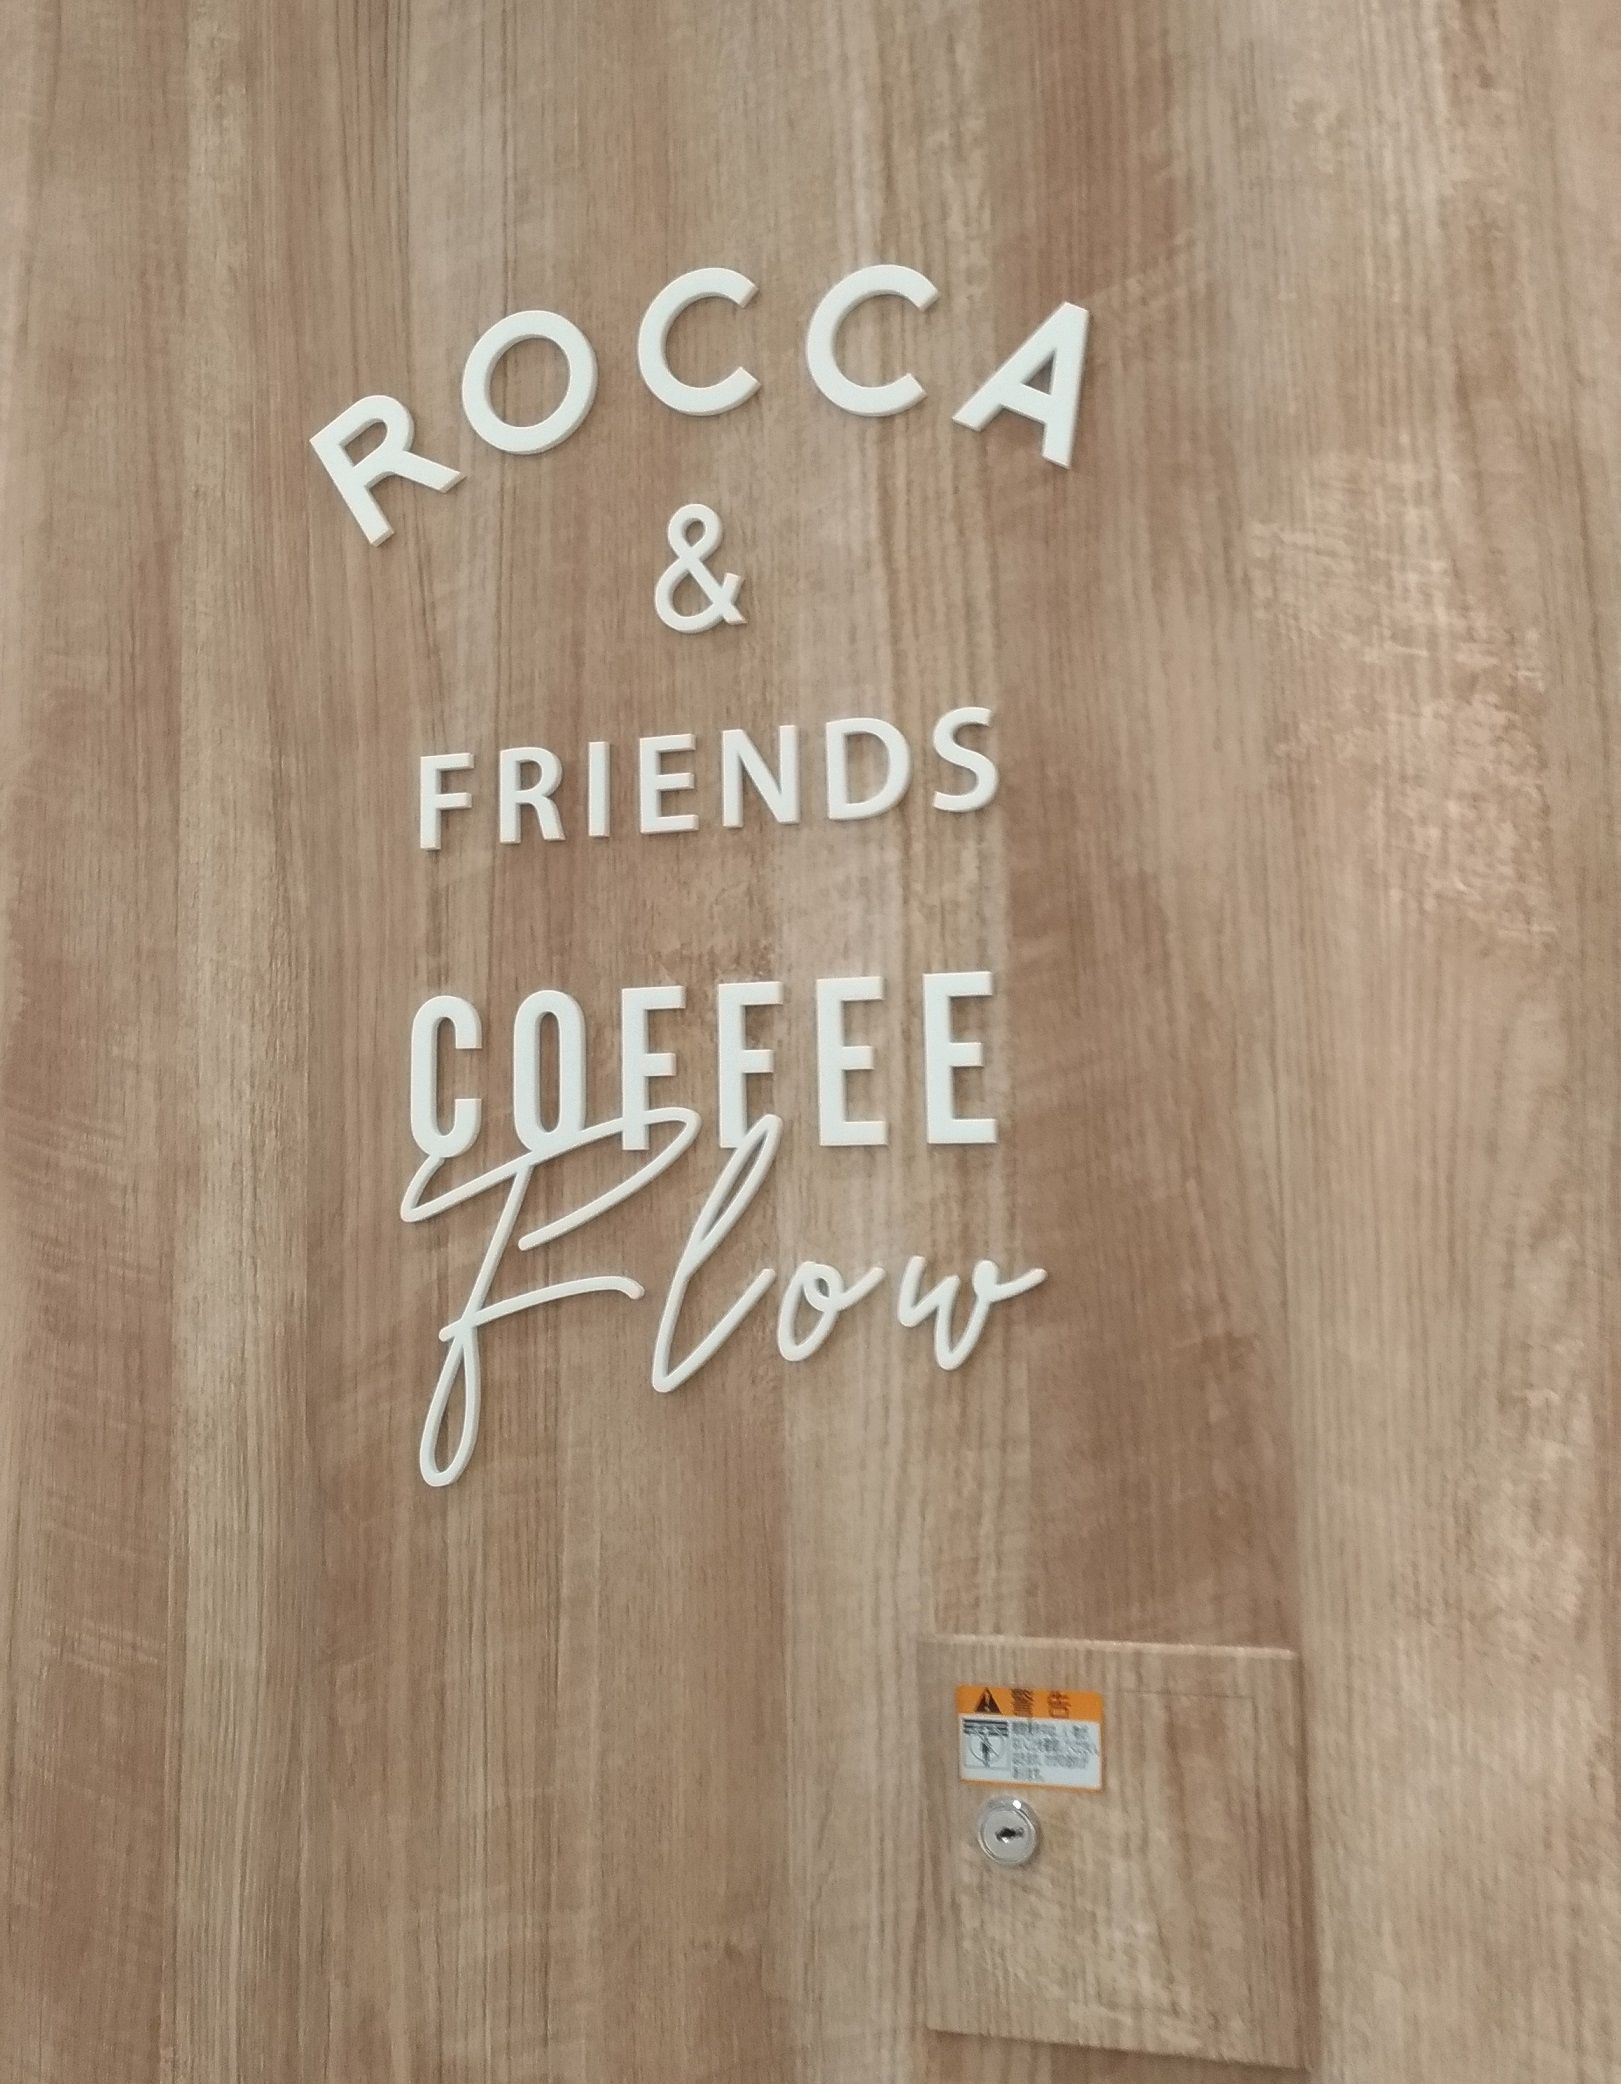 lucua_new_rocca_coffee_.jpg